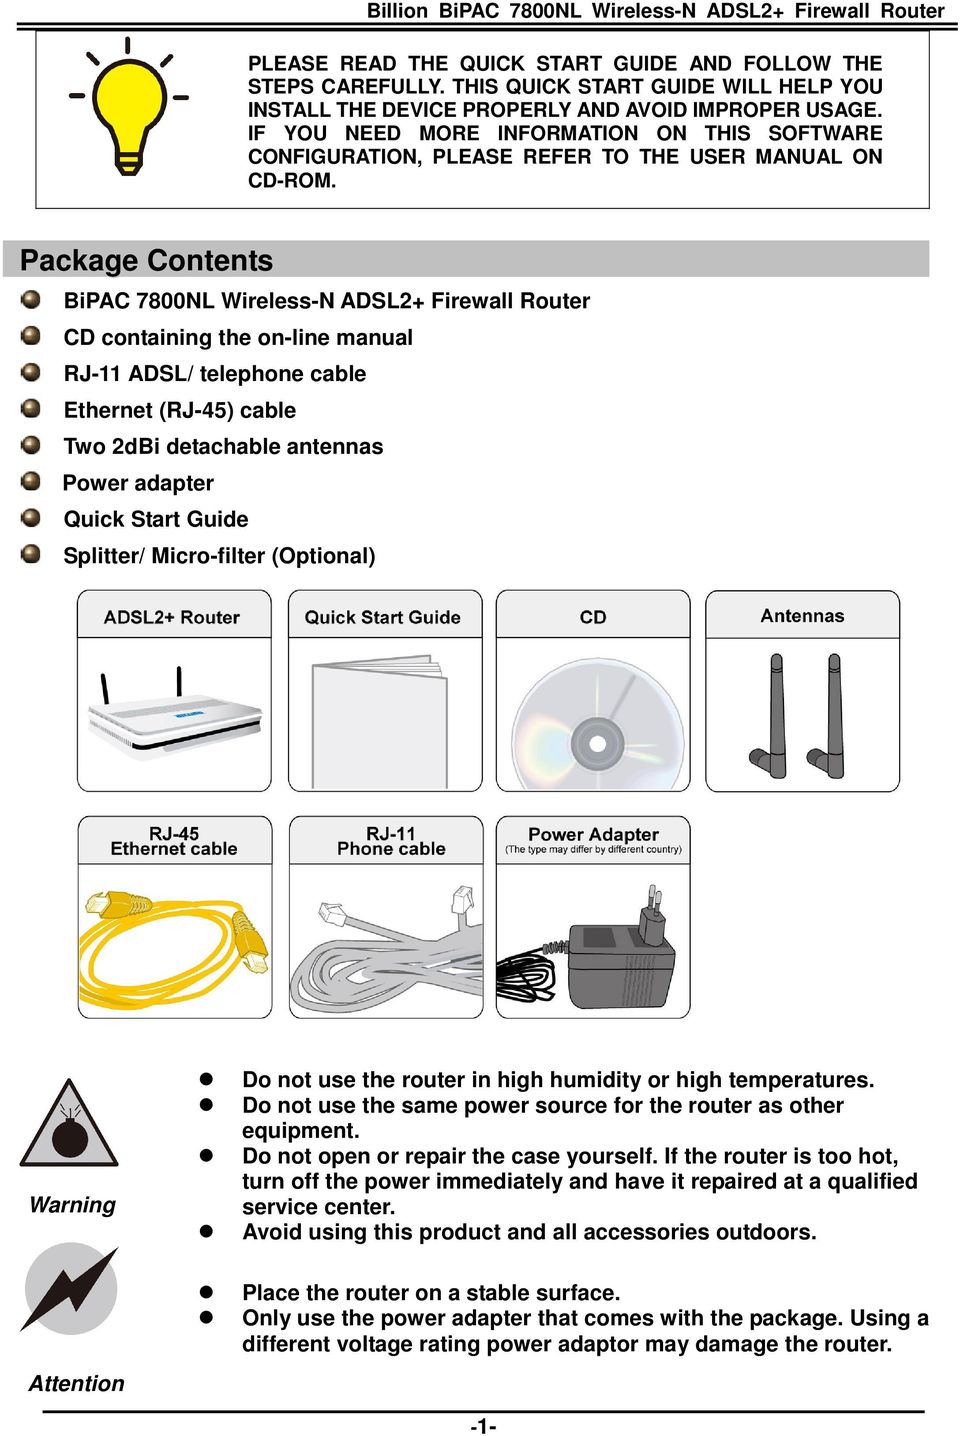 Package Contents BiPAC 7800NL Wireless-N ADSL2+ Firewall Router CD containing the on-line manual RJ-11 ADSL/ telephone cable Ethernet (RJ-45) cable Two 2dBi detachable antennas Power adapter Quick